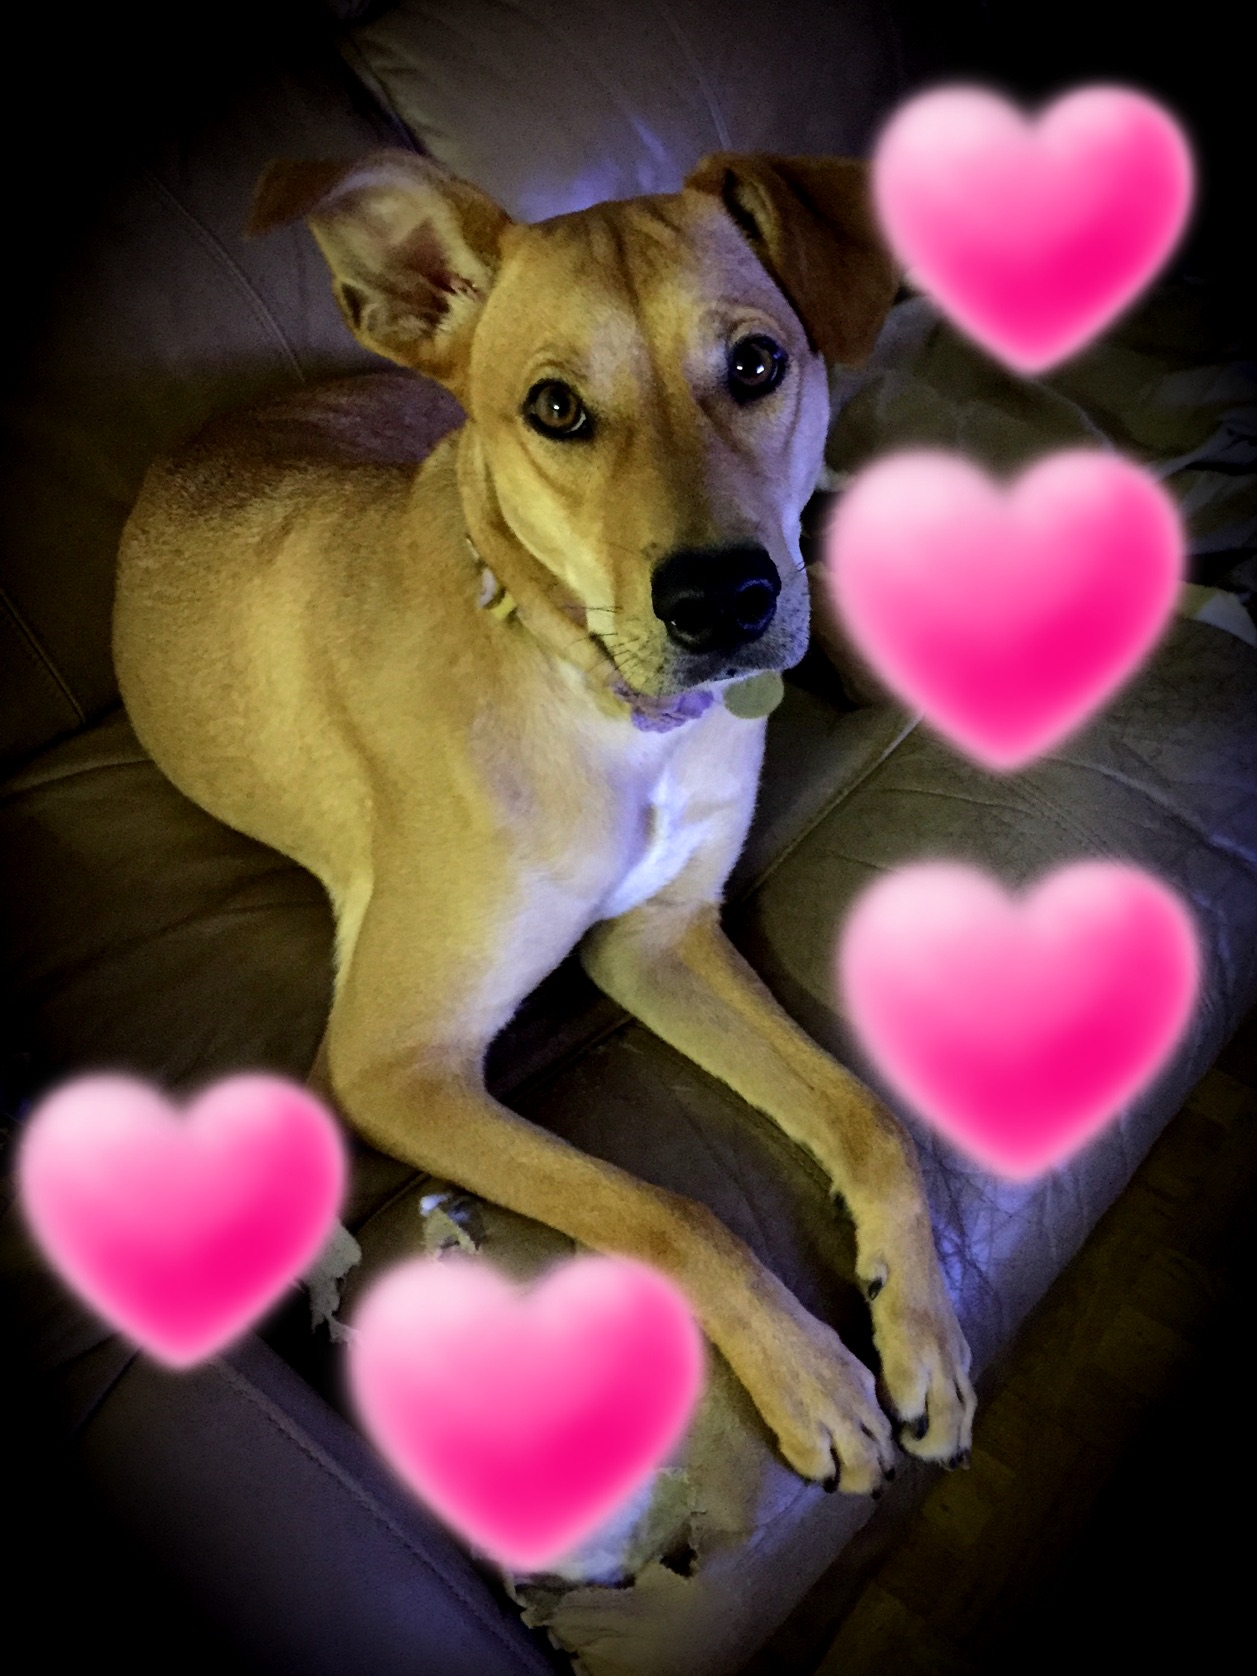 PEANUT BUTTER: 2 yr old hound mix. My favorite thing to do is chew up furniture and eat gourmet meats.